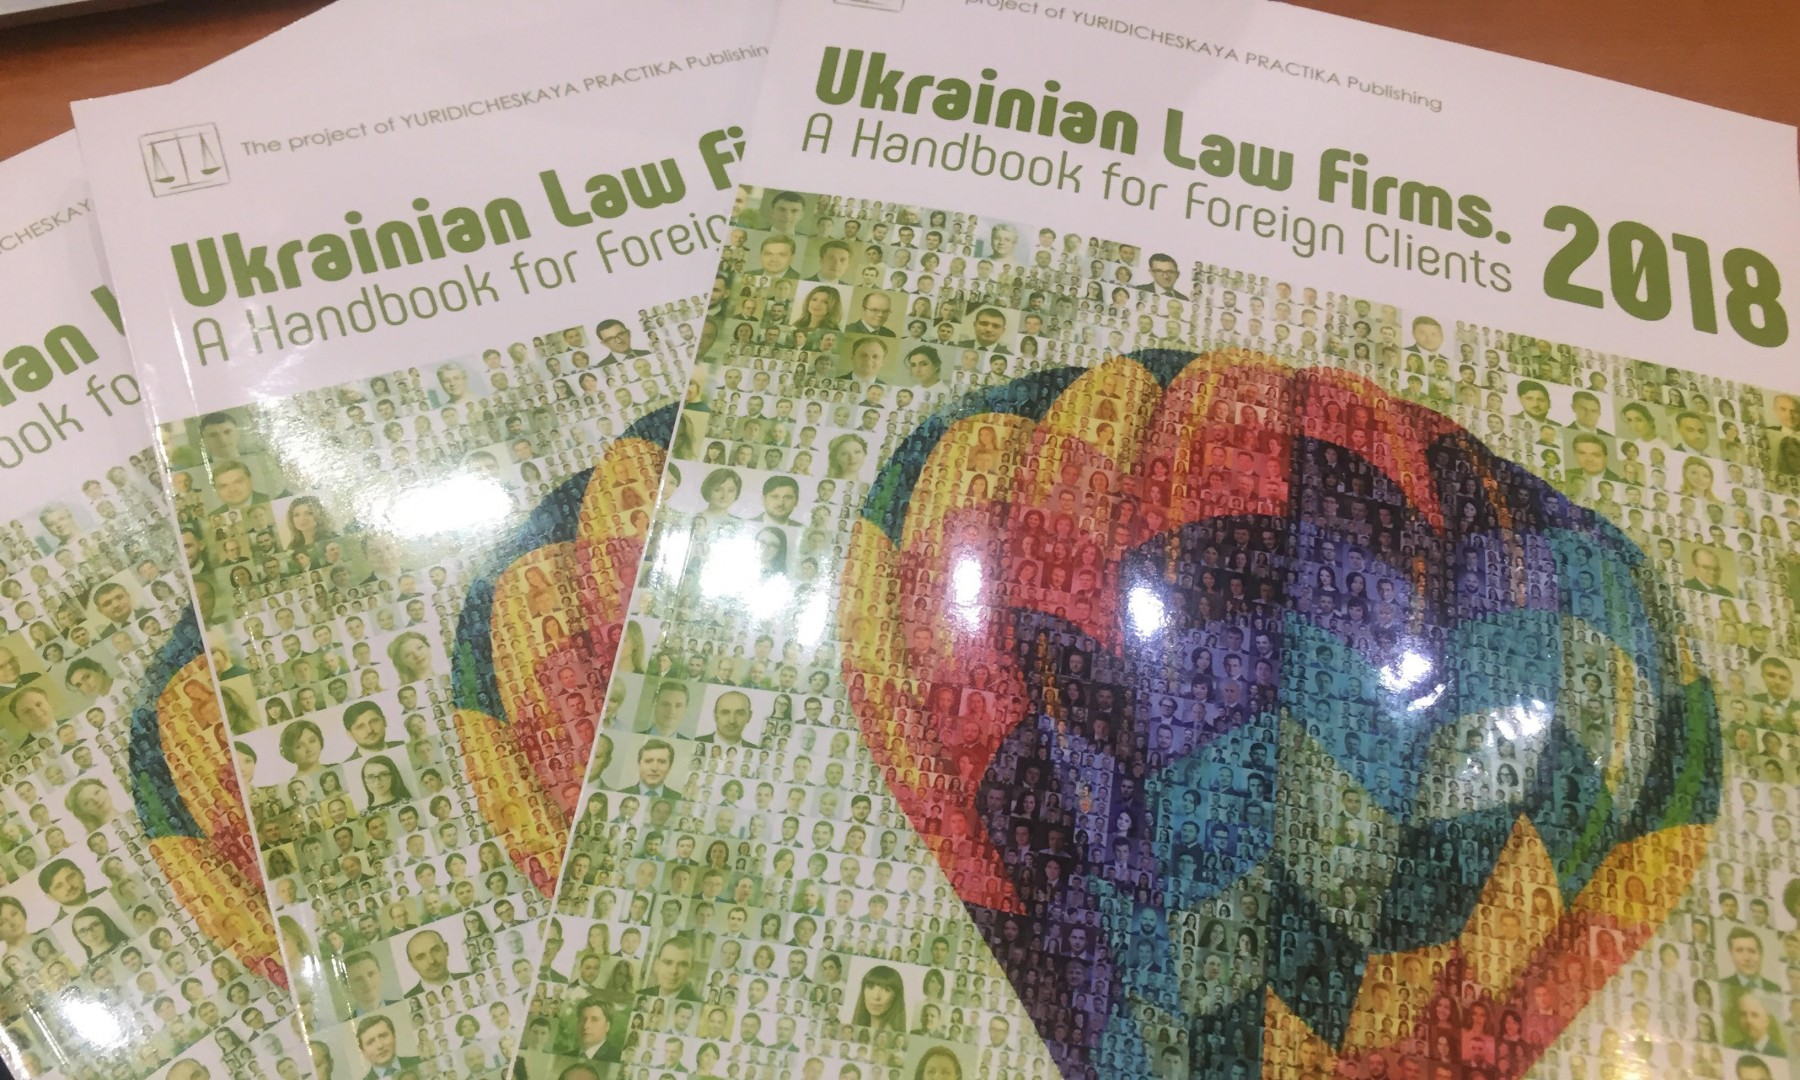 UKRAINIAN LAW FIRMS 2018